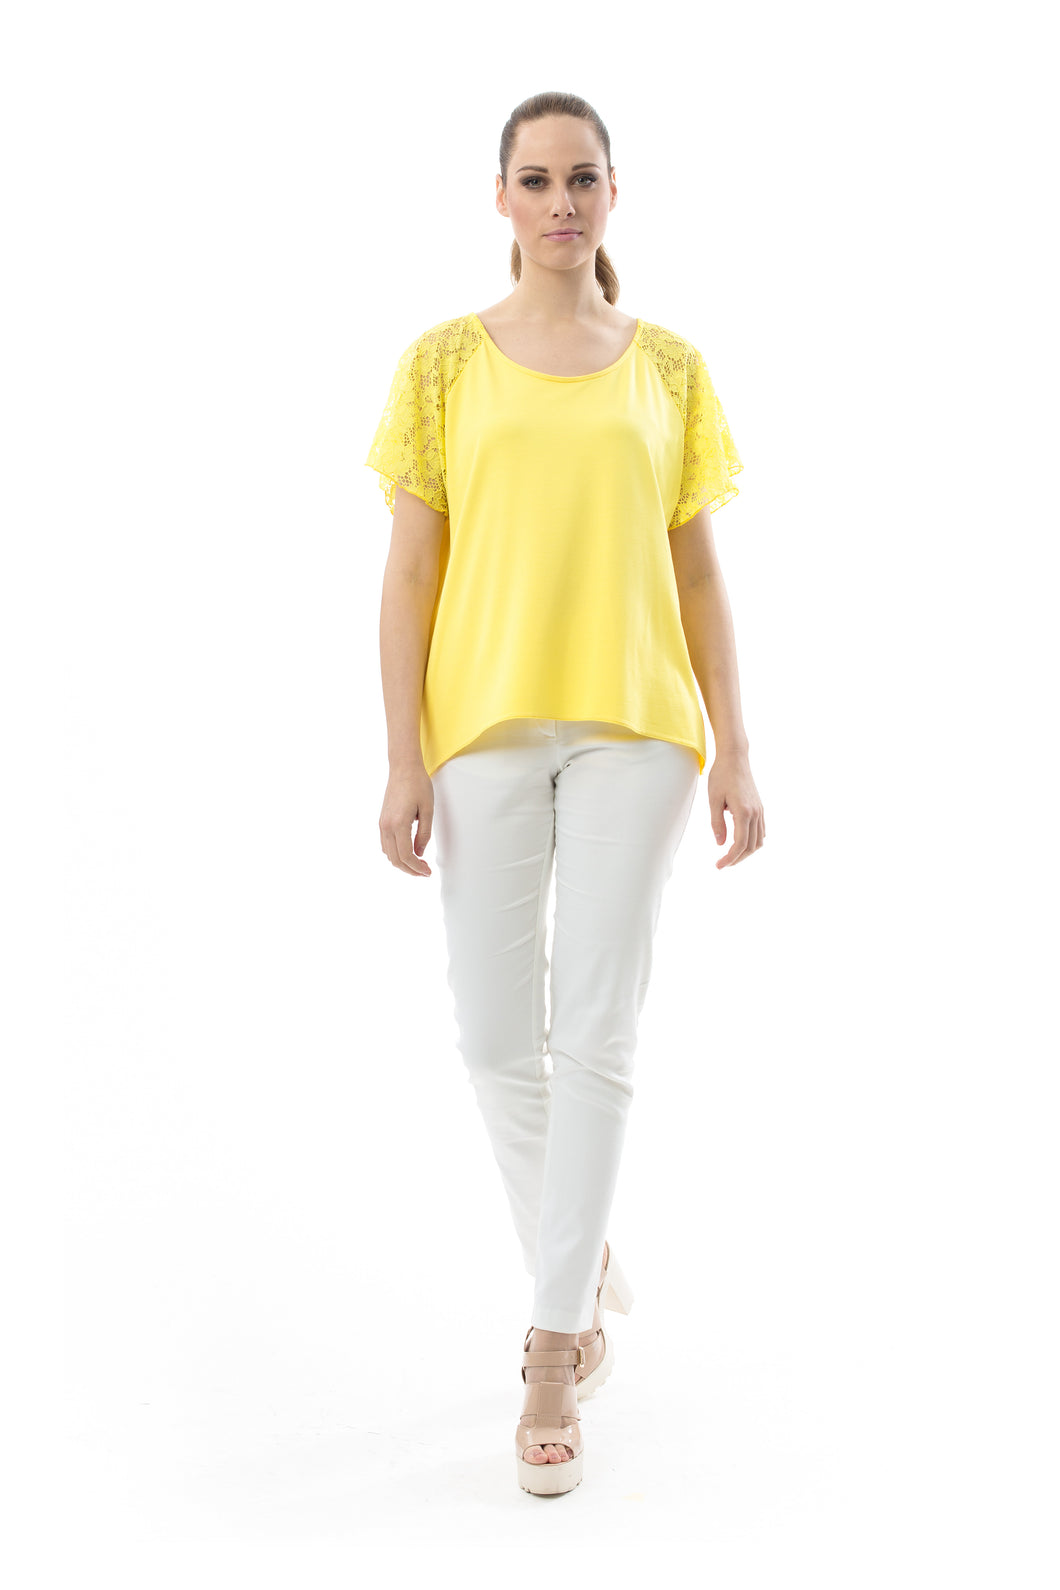 Lace Detail Short-Sleeved Top in Yellow